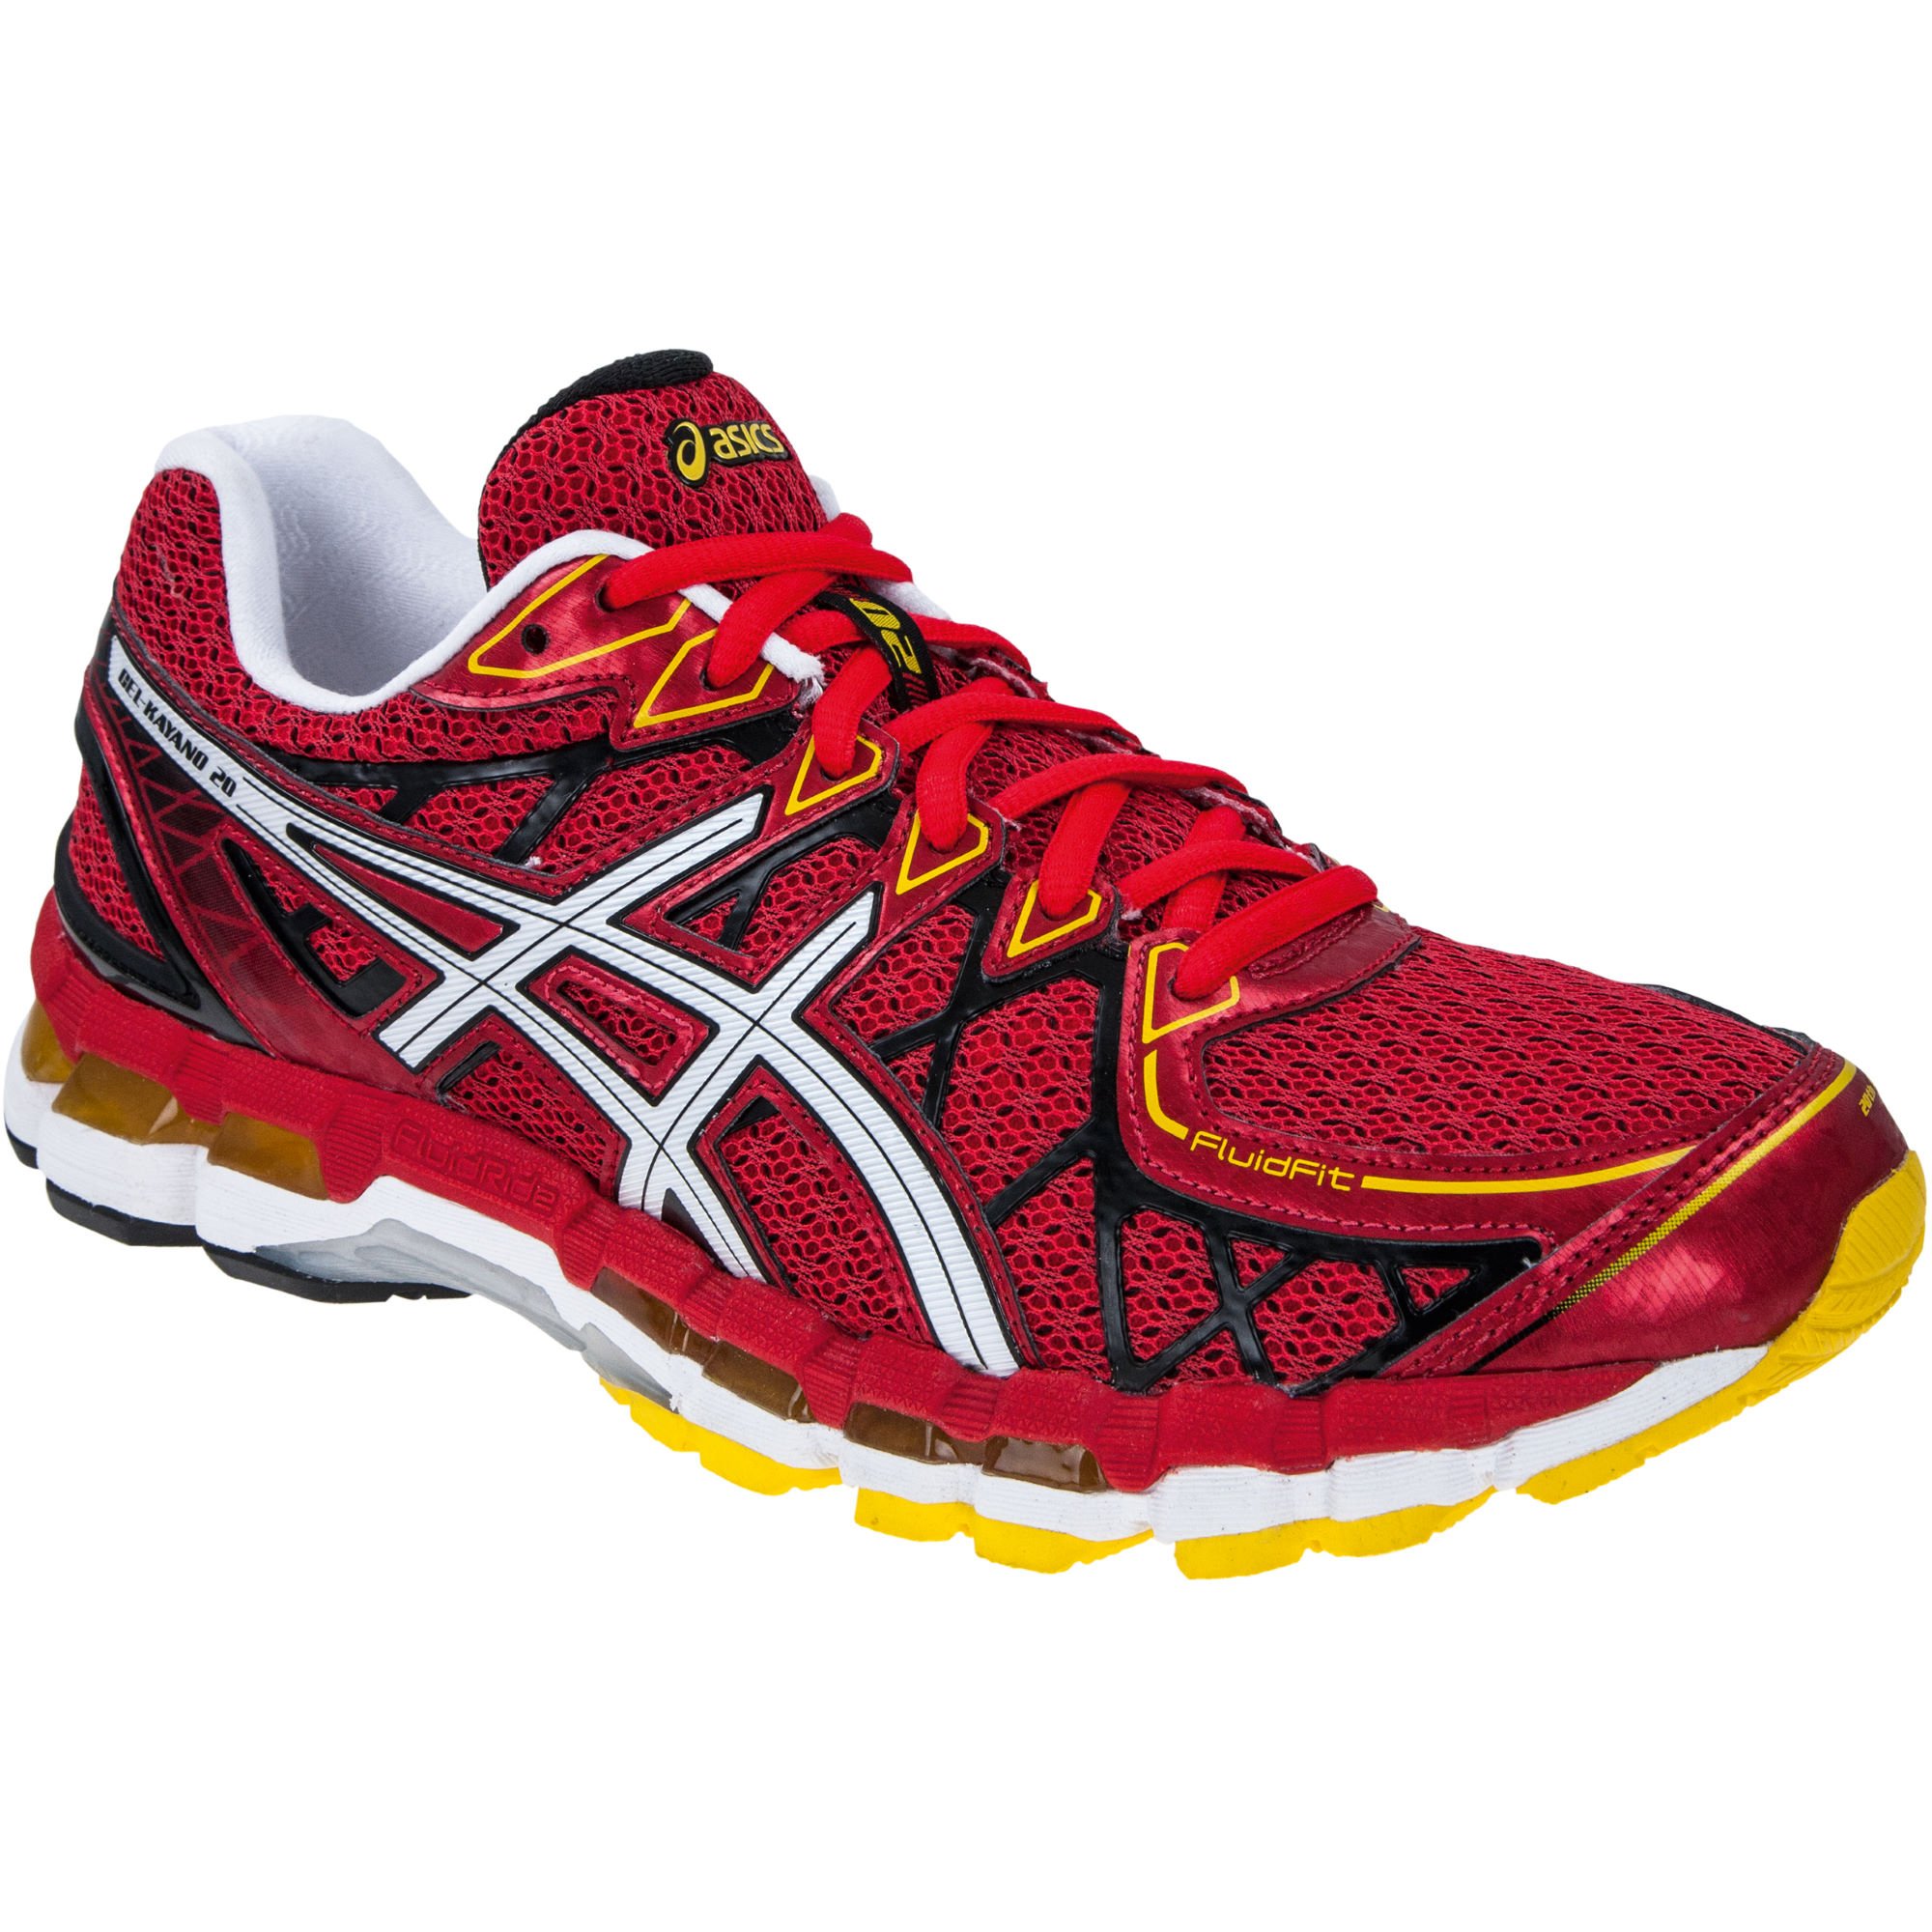 Asics Gel-Kayano 20 Shoes (Wide Fit 2E) - AW14